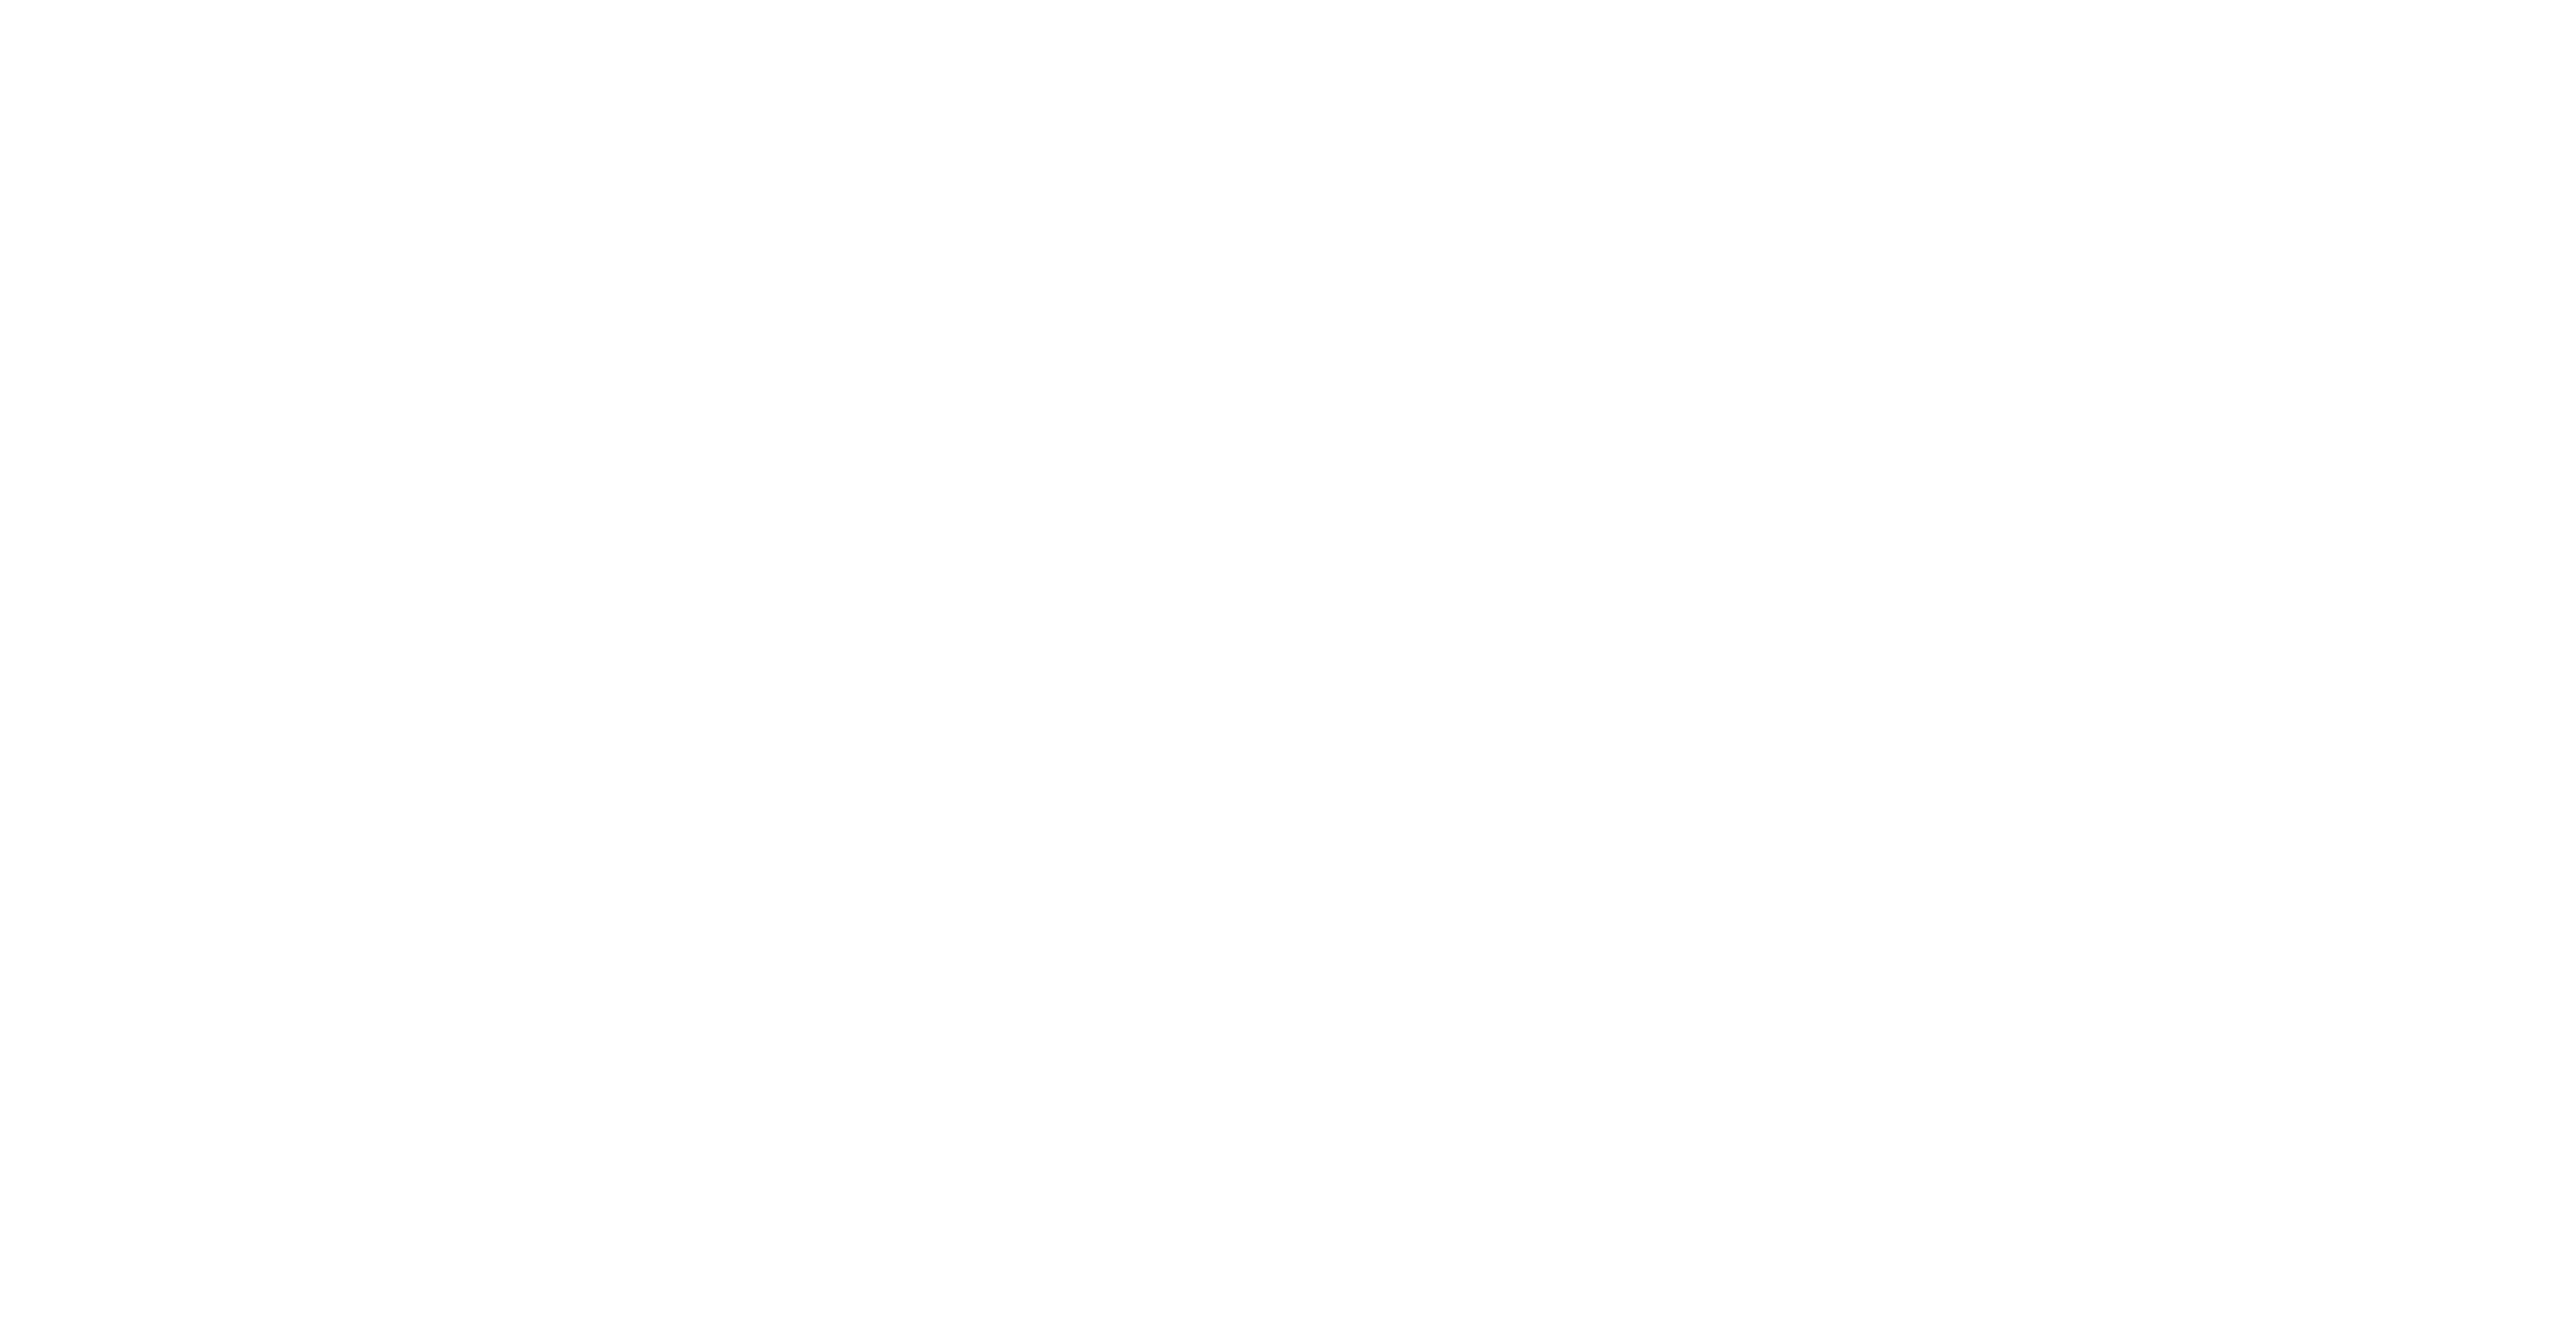 wyve logo white and transparent